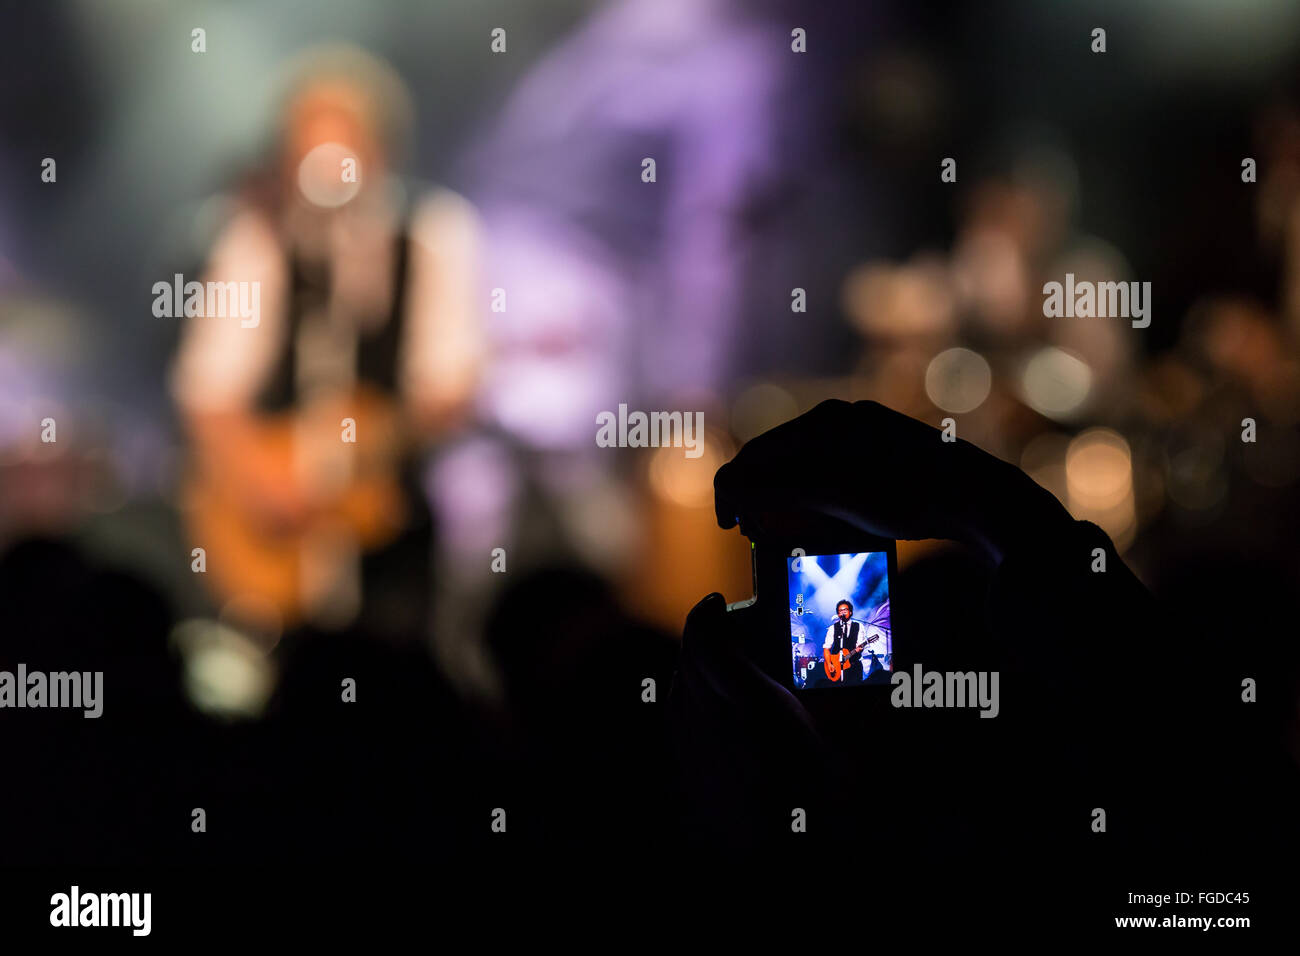 Concertgoers takes a photo with iPhone - Stock Image